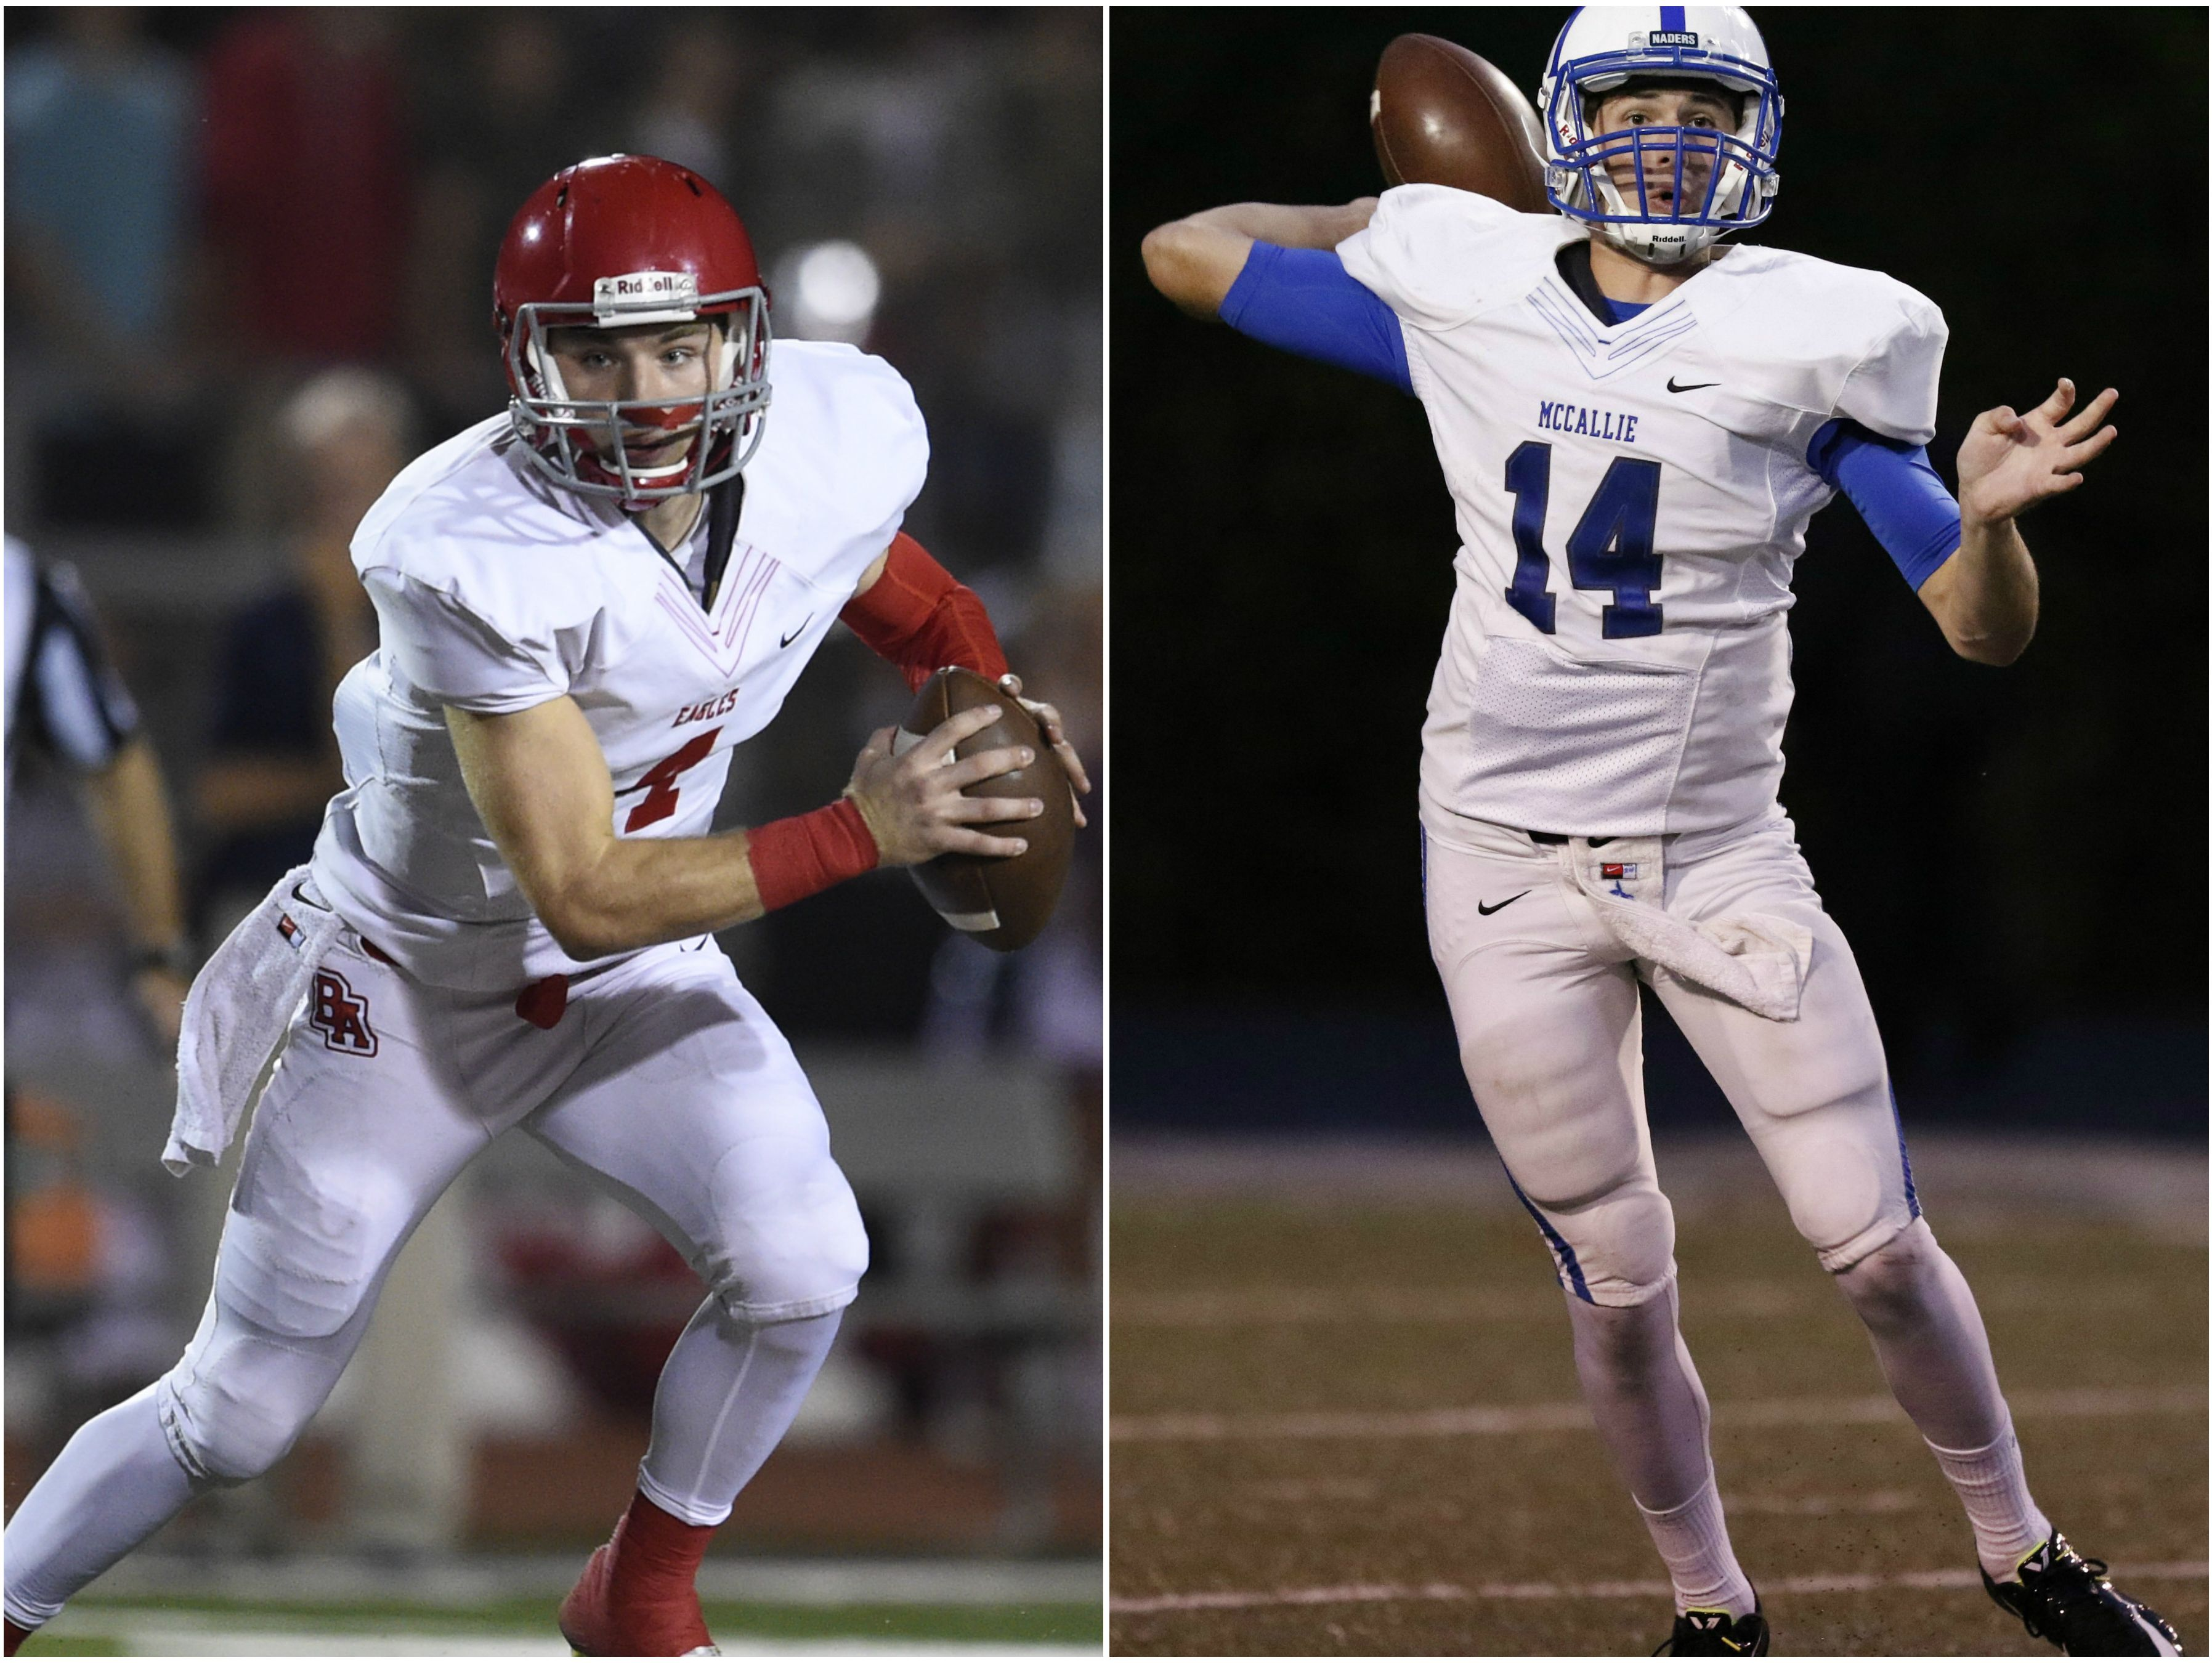 Brentwood Academy quarterback Jeremiah Oatsvall (left) and McCallie quarterback Robert Riddle (right)